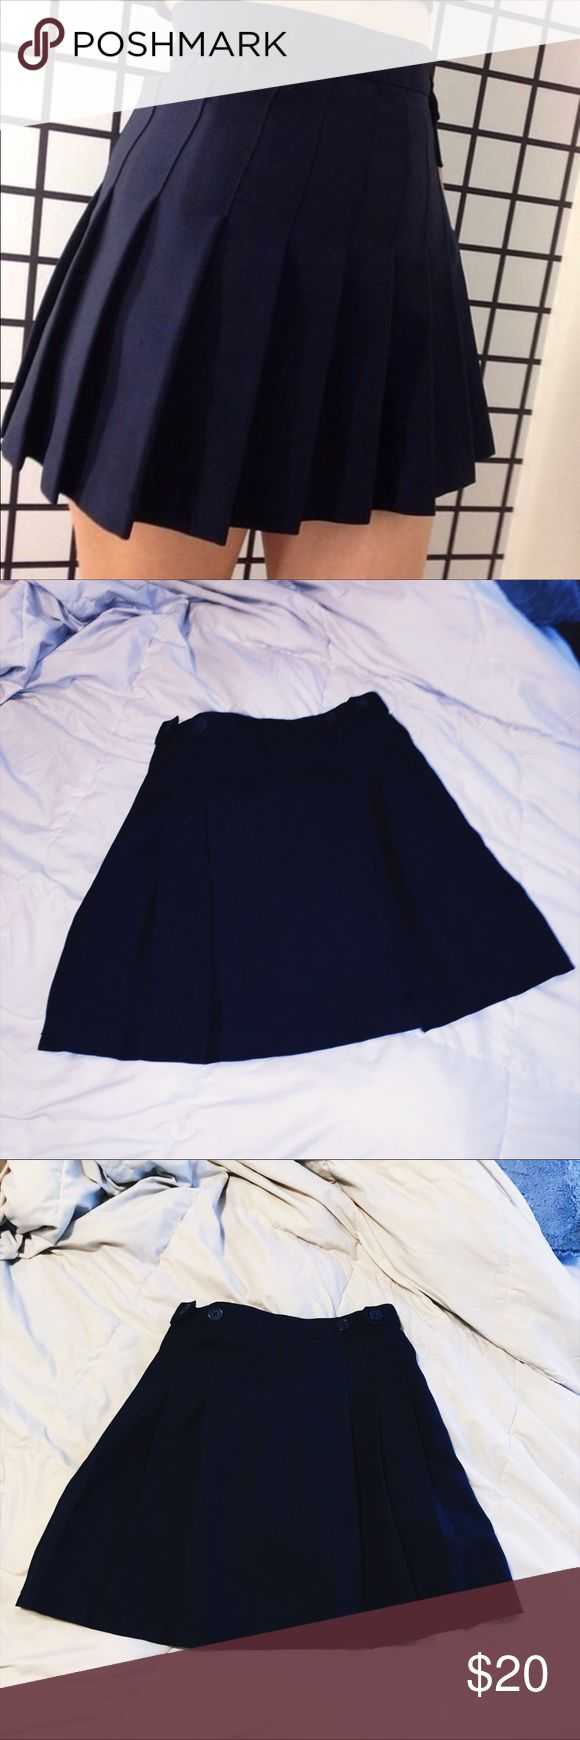 📚 Navy Blue Pleated Schoolgirl Mini Skirt 📚 Navy Blue Pleated Schoolgirl Mini Skirt Size 0  High waisted - High Waisted  Zips on the side with buttons  All around pleated  Chaps by Ralph Lauren  Perfect condition Urban Outfitters Skirts Mini